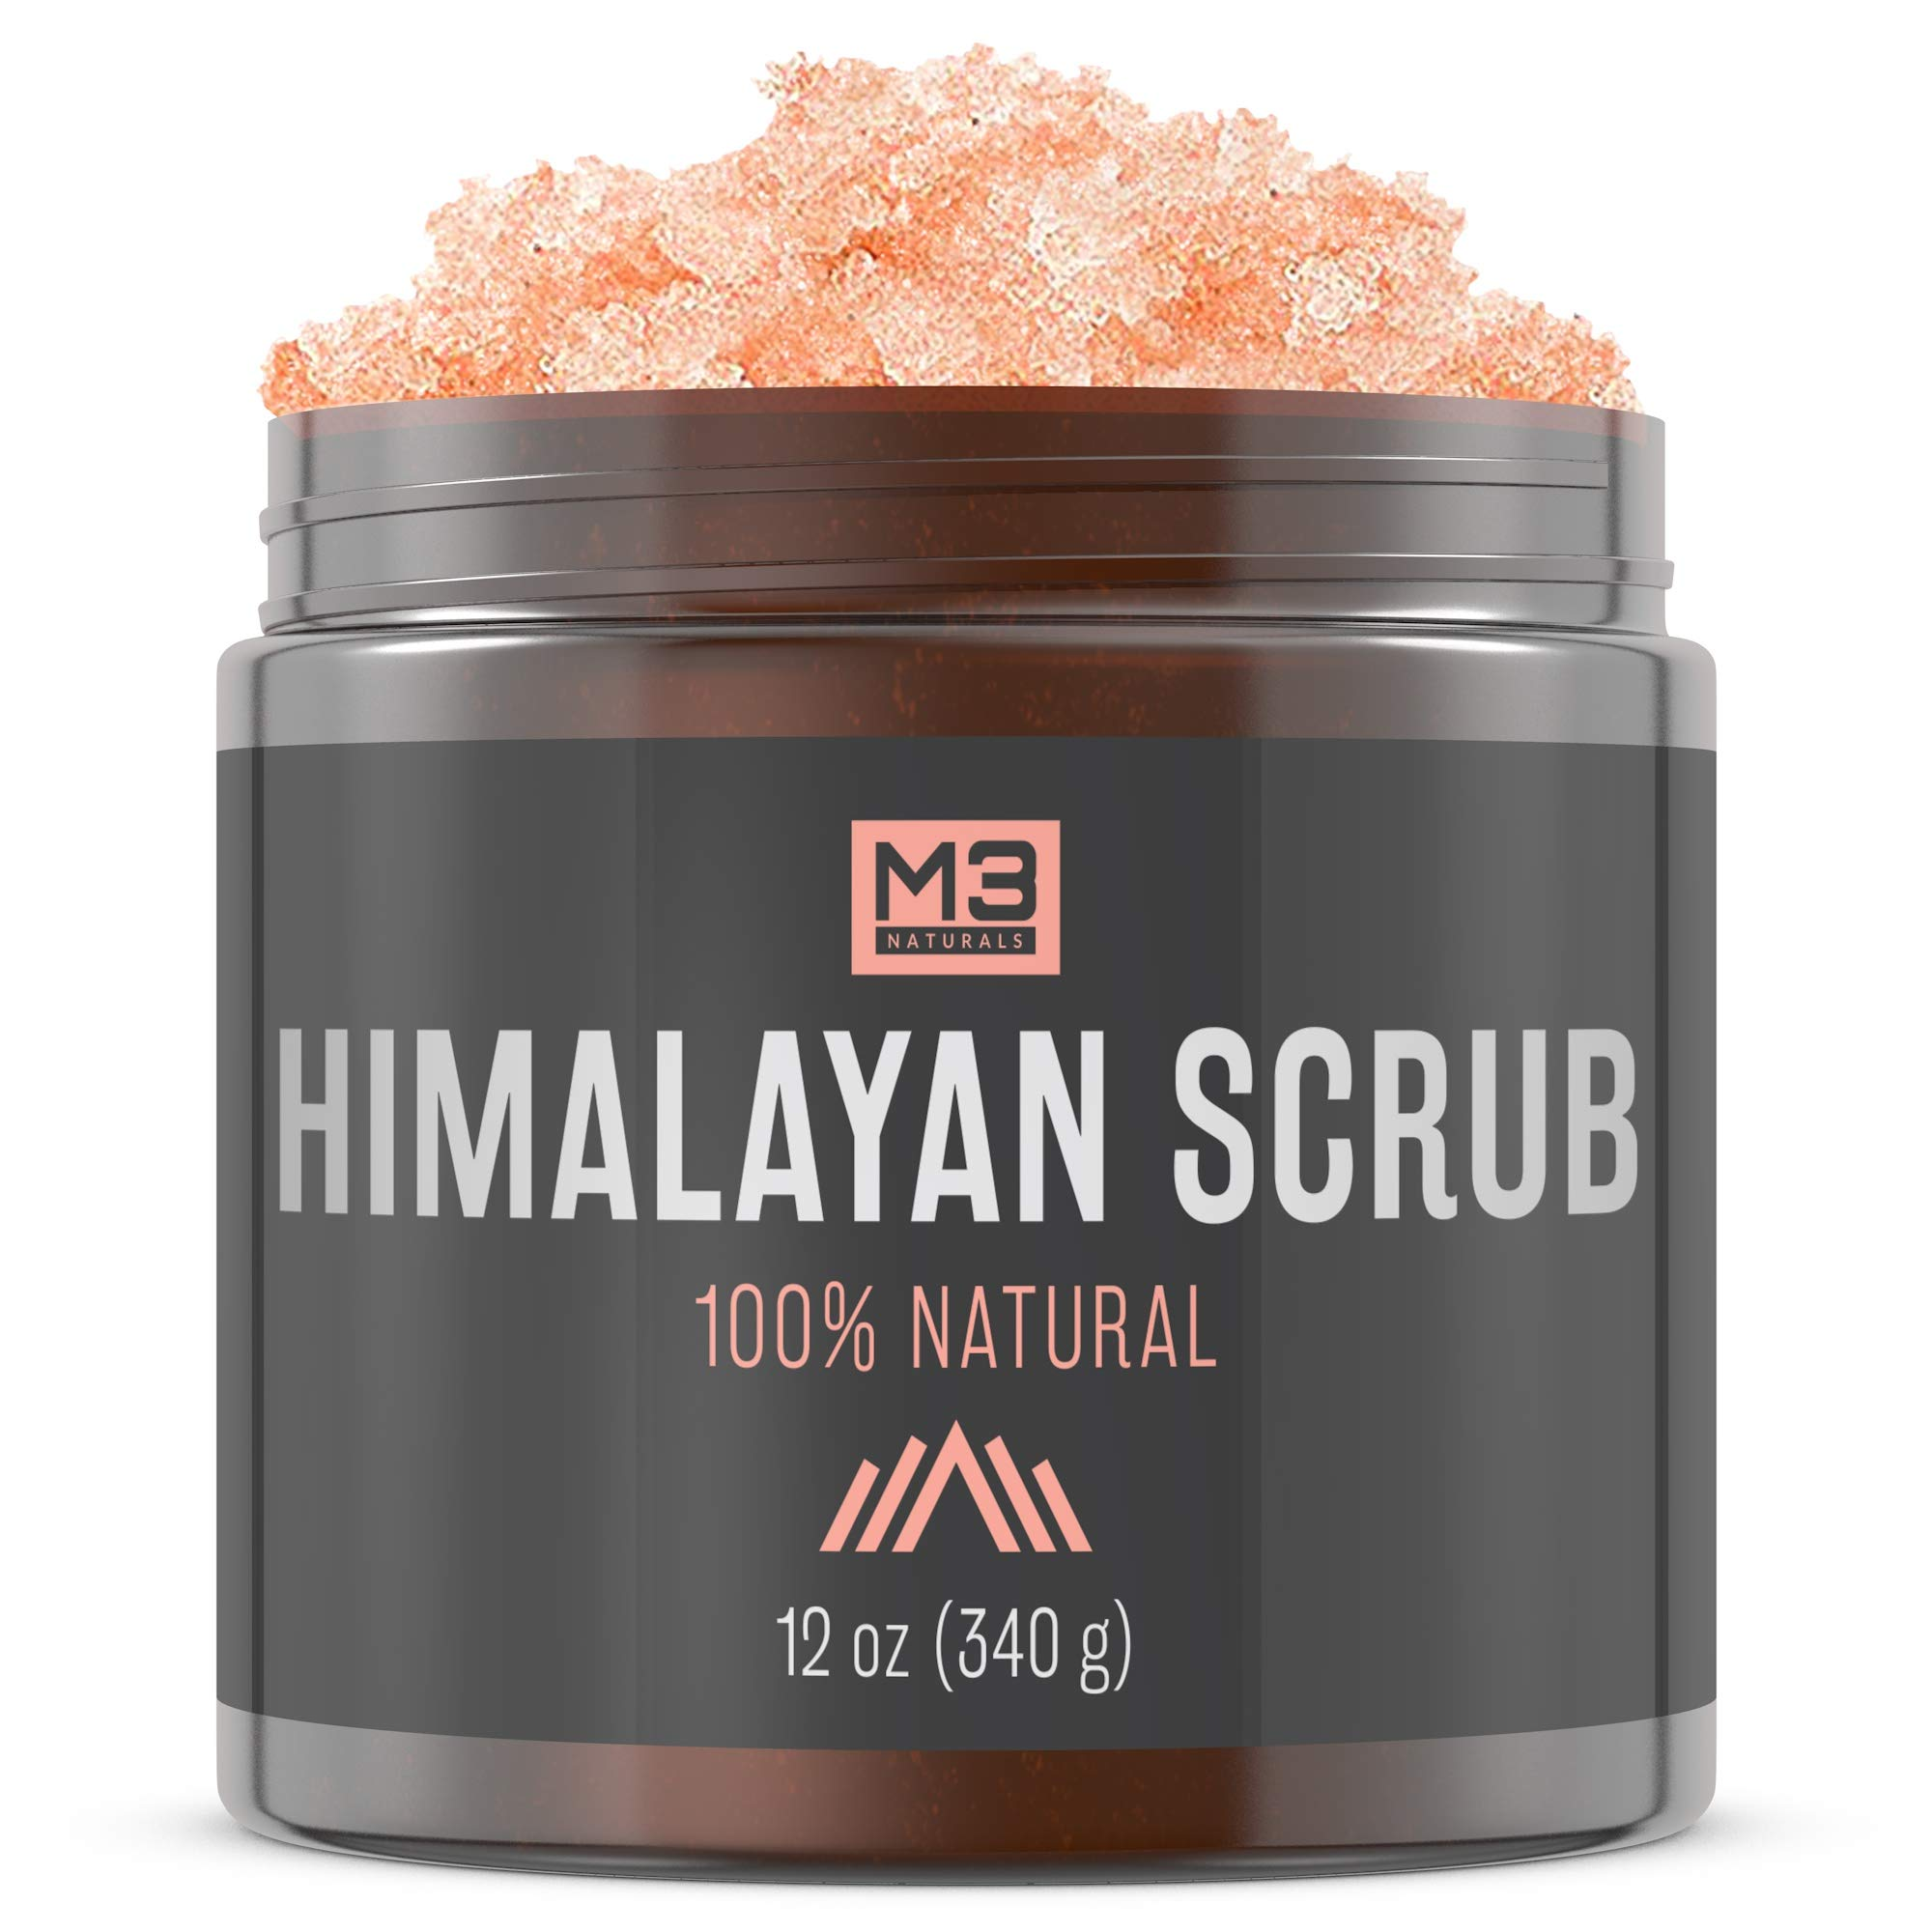 M3 Naturals Himalayan Salt Body & Face Scrub with Lychee Sweet Almond Oil All Natural Skin Care Exfoliating Blackheads Acne Scars Reduces Wrinkles Anti Cellulite Treatment 12 OZ